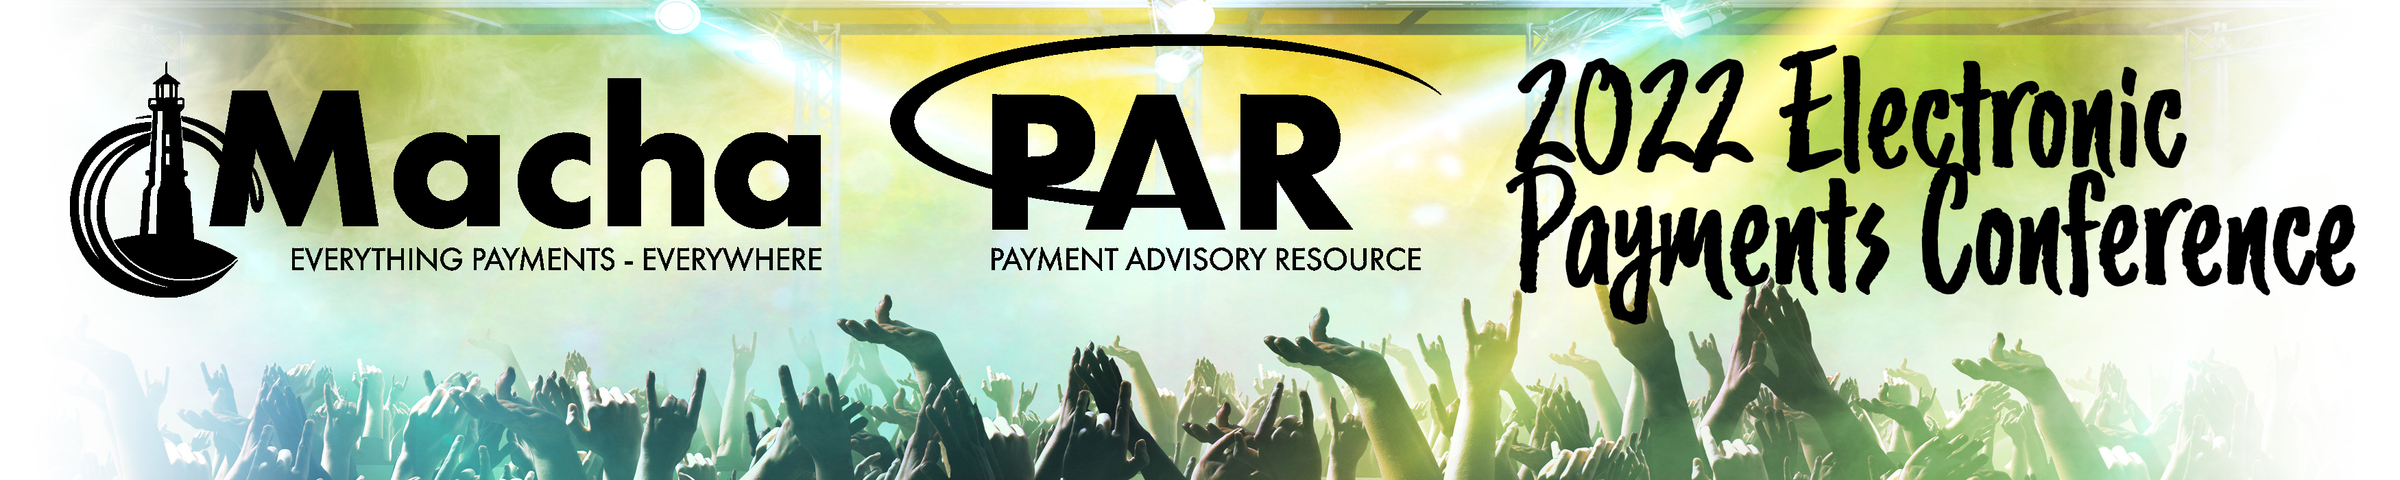 WACHA Electronic Payments Conference